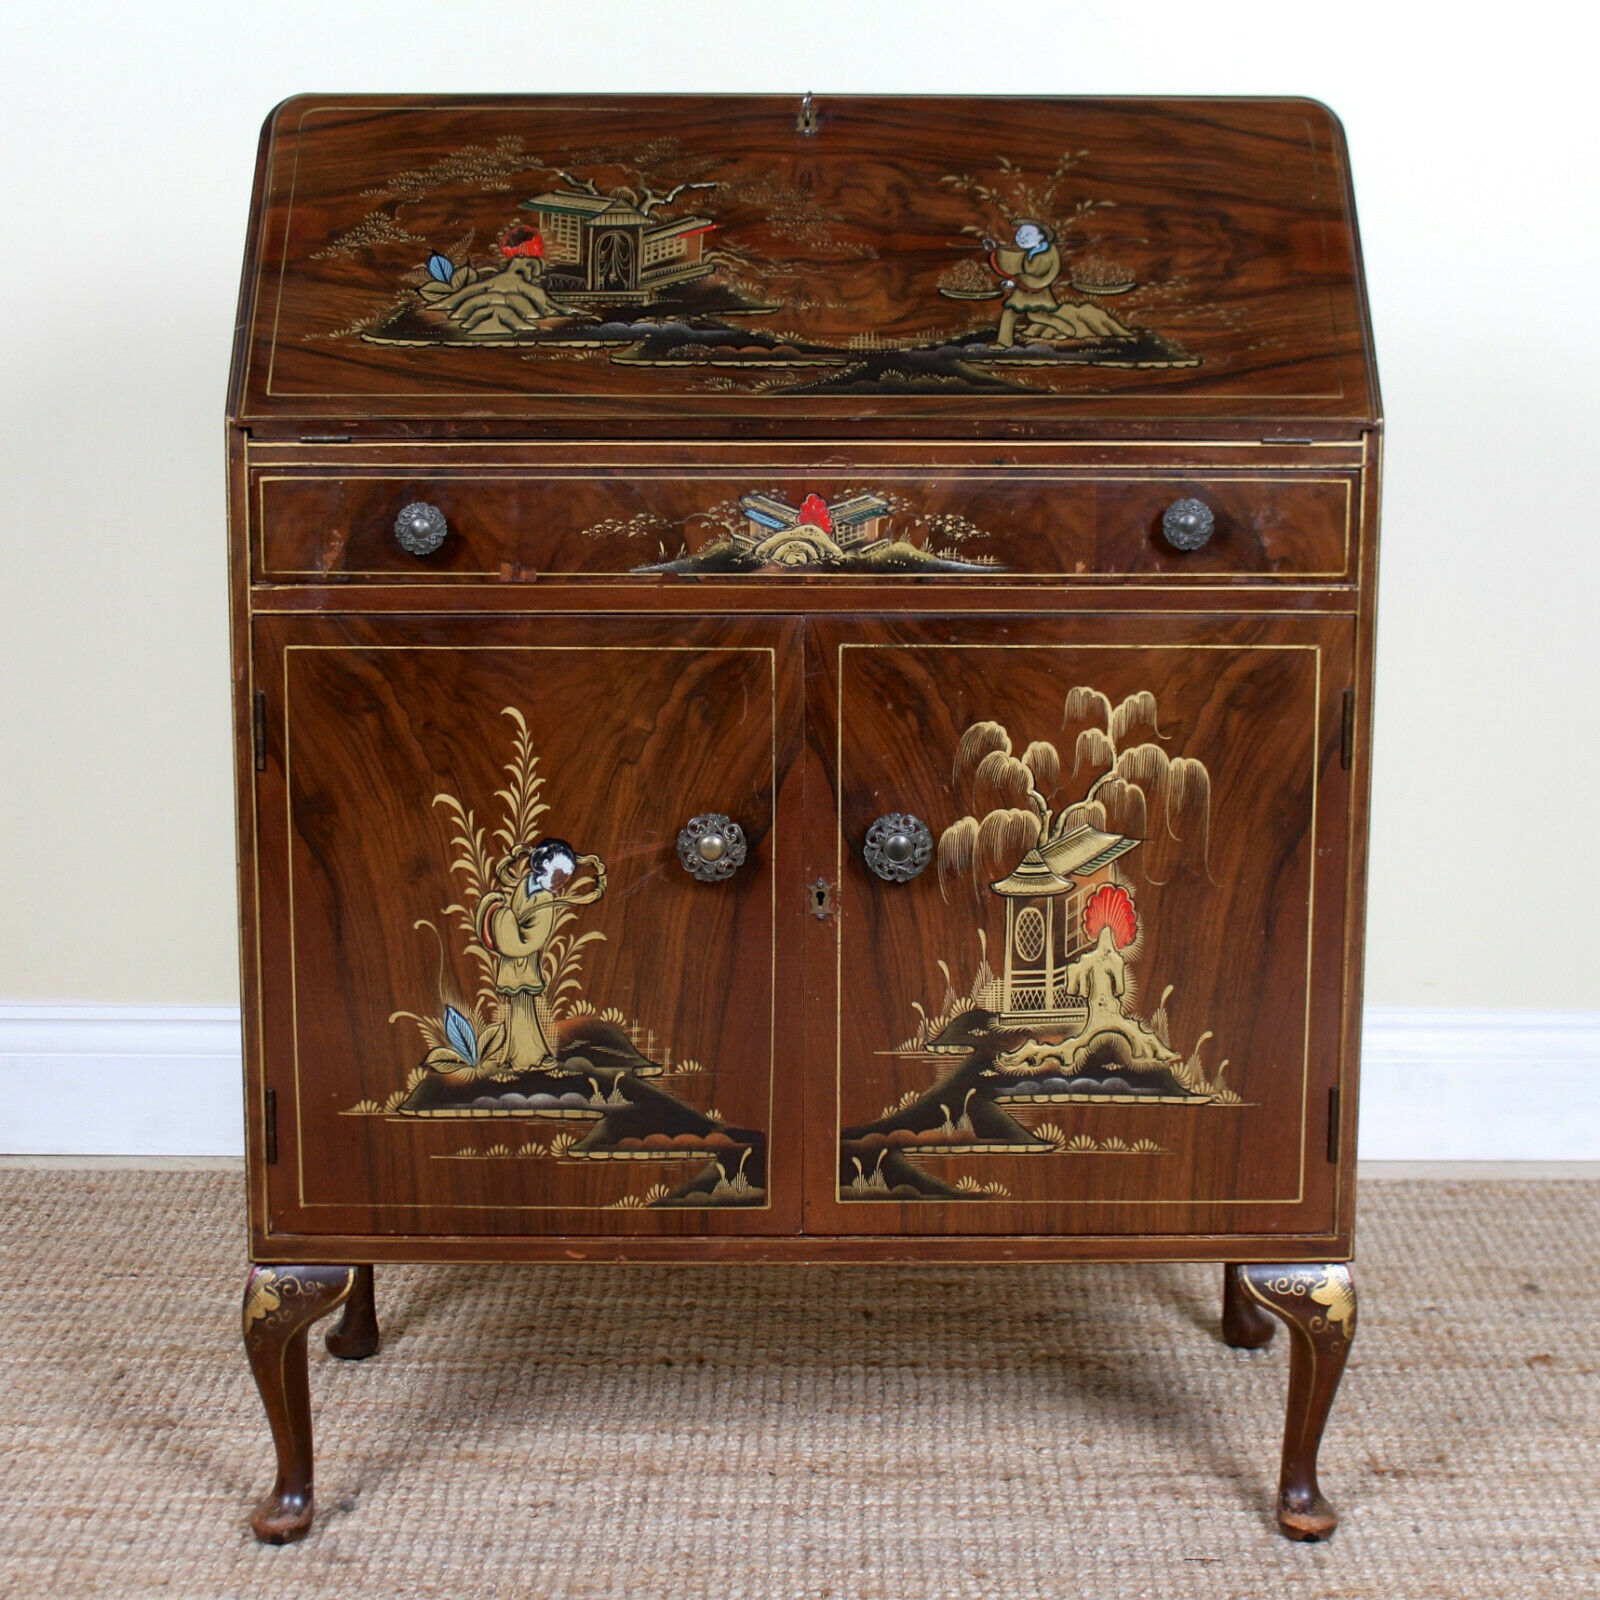 Vintage Chinese Bureau Chinoiserie Writing Desk Chest Drawers Inlaid Gilded